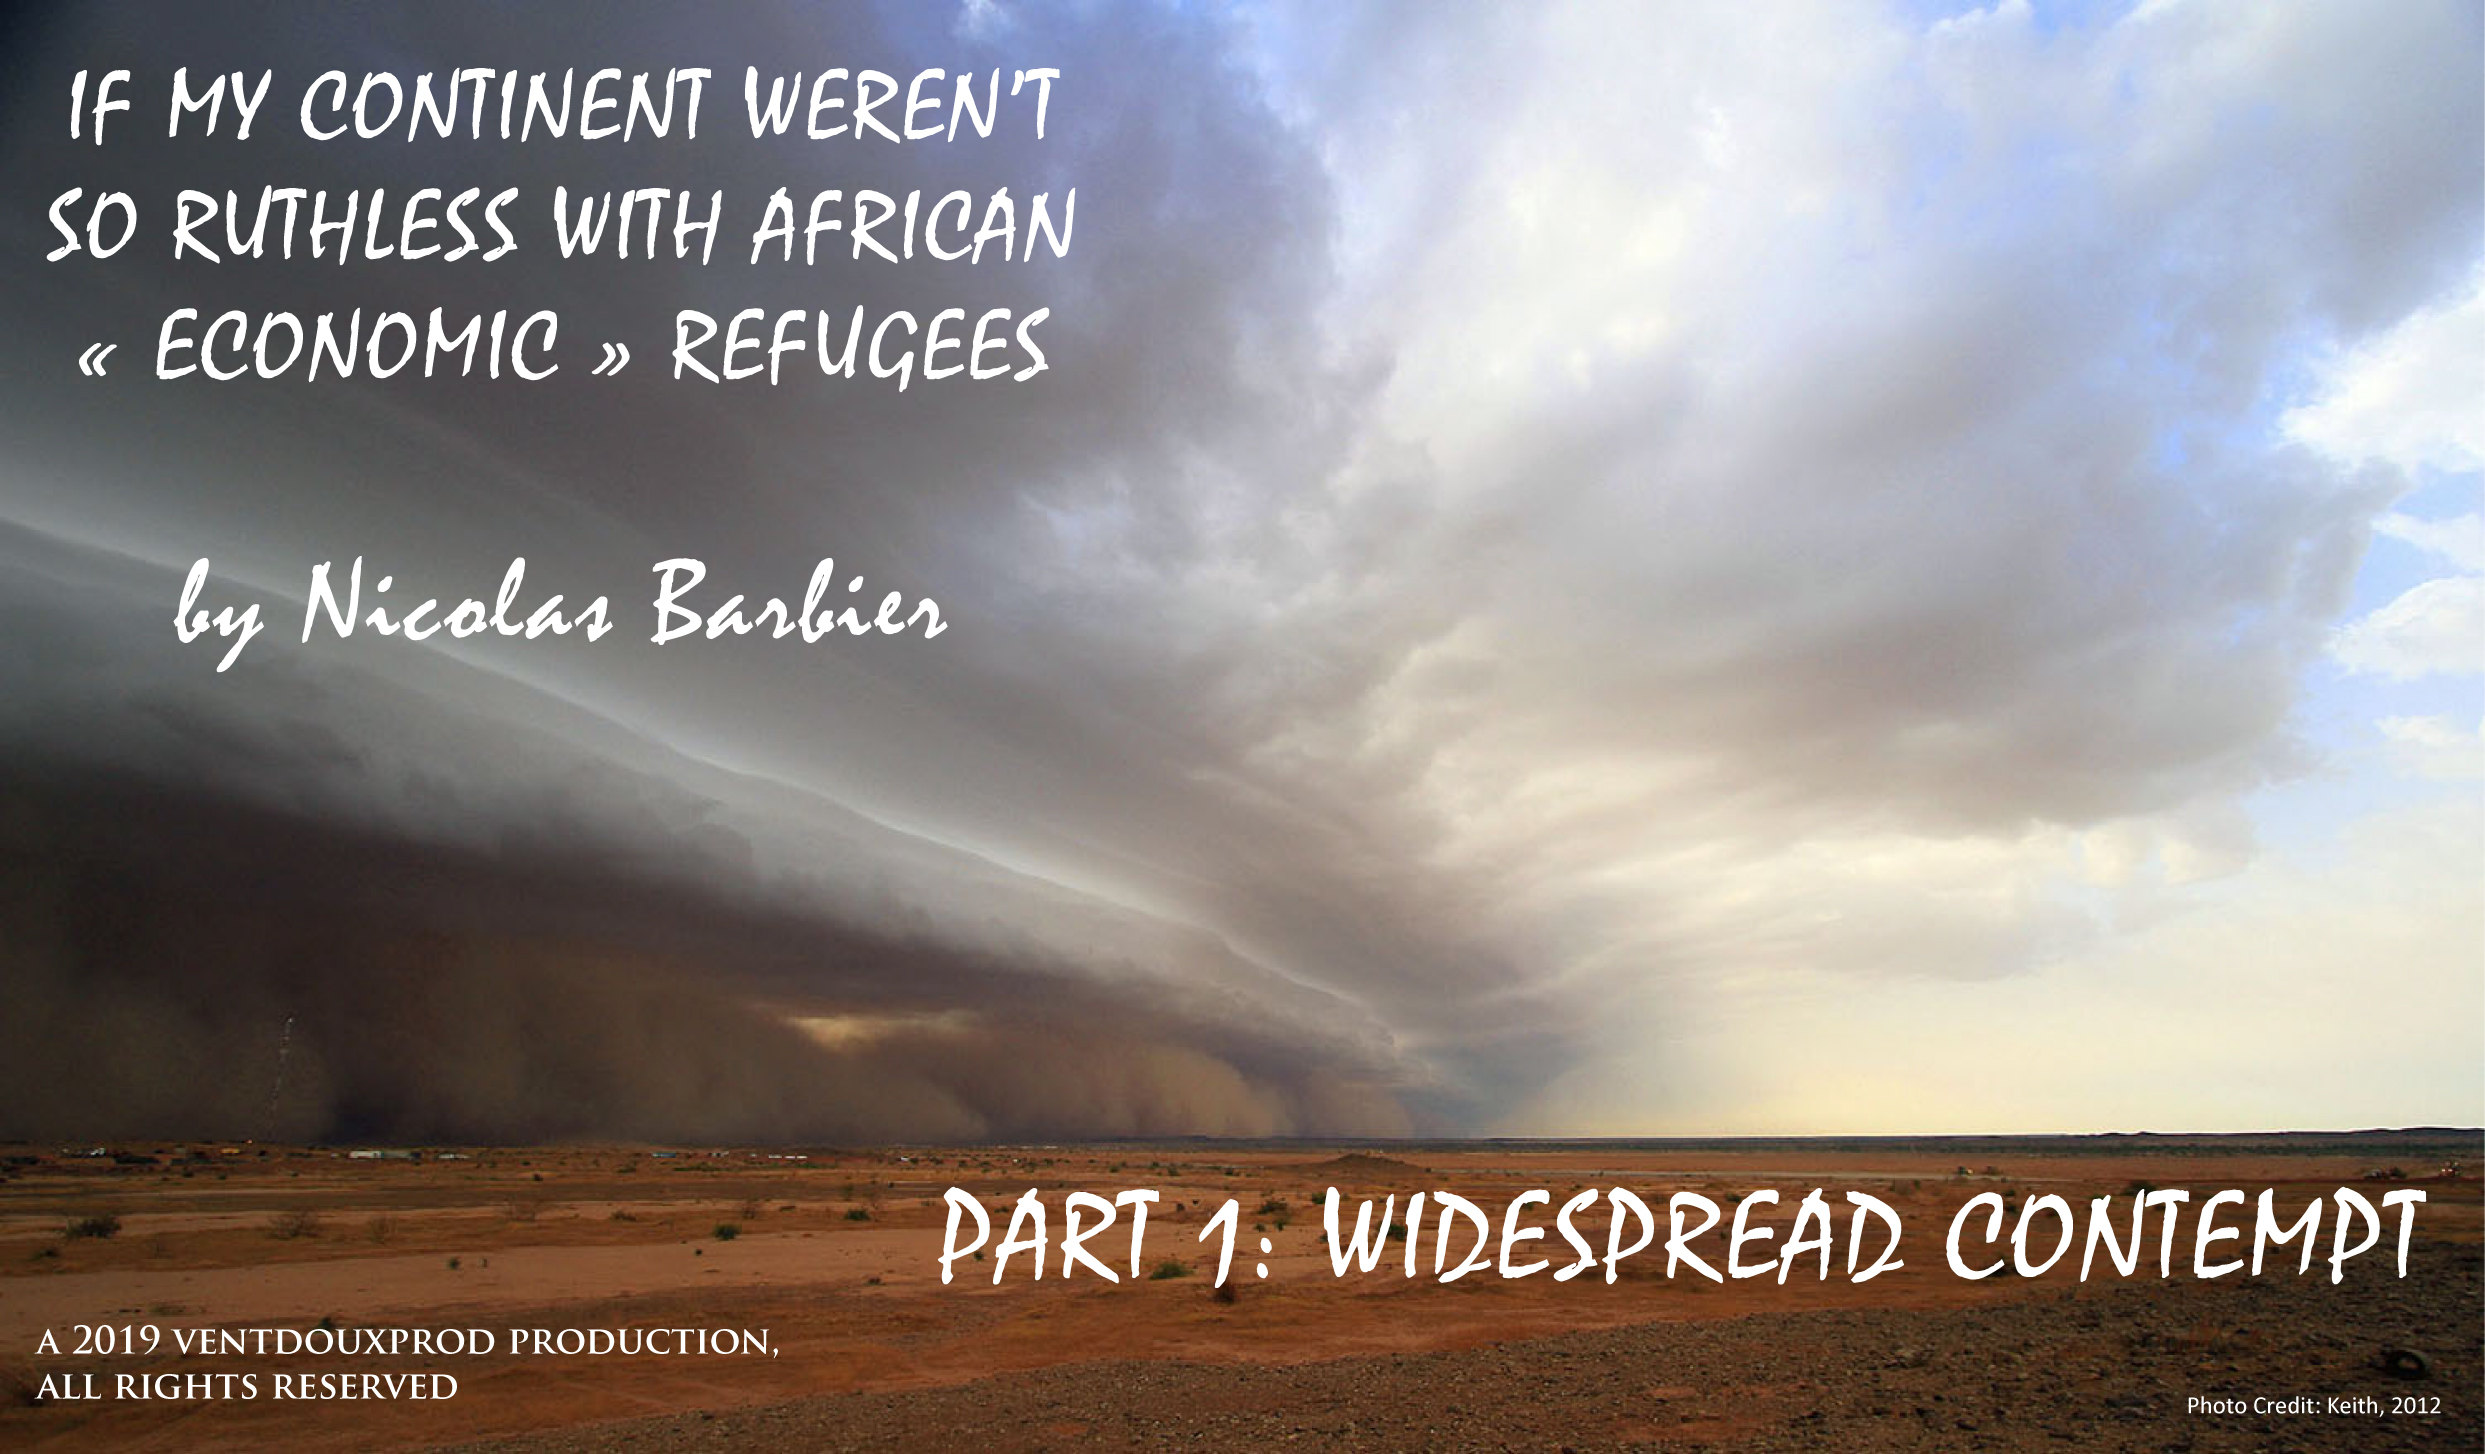 ventdouxprod 2019 nicolas barbier if my continent weren't so ruthless with african economic refugees